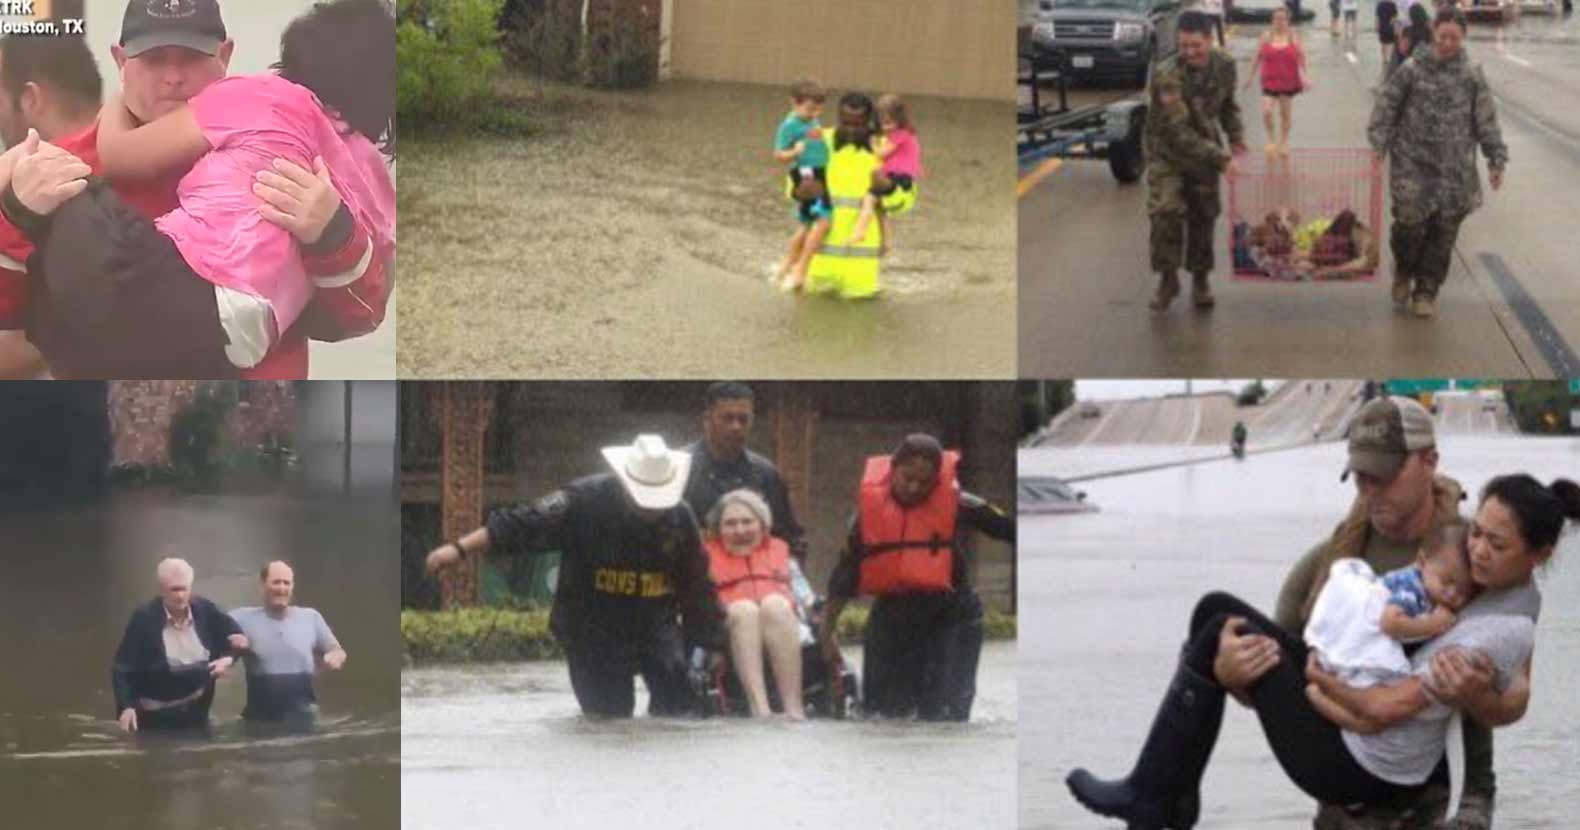 People Helping Each Other: Diverse Groups Of People Helping Each Other In Houston